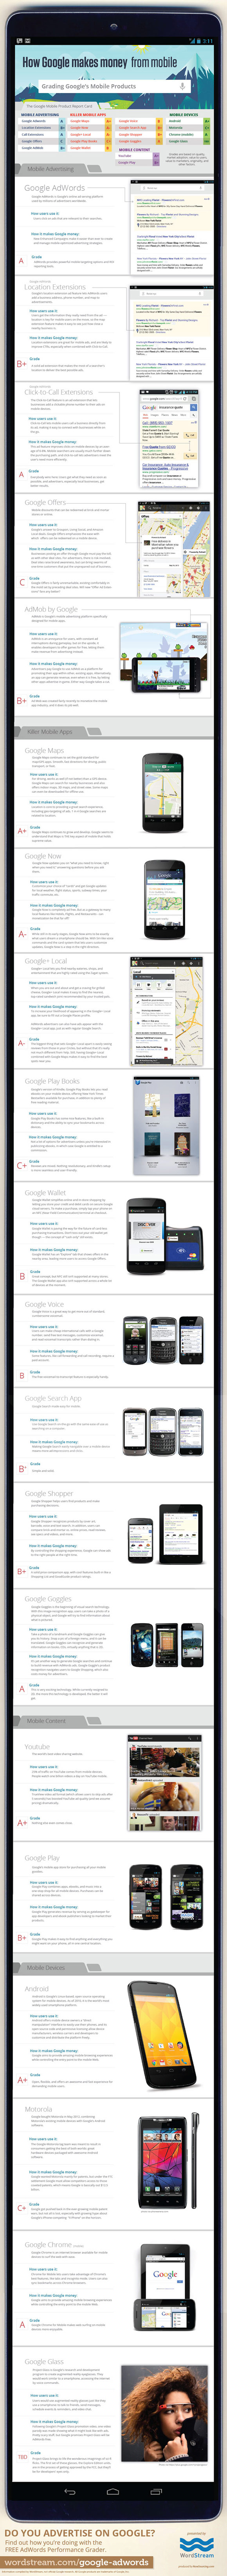 google-mobile-monetization2